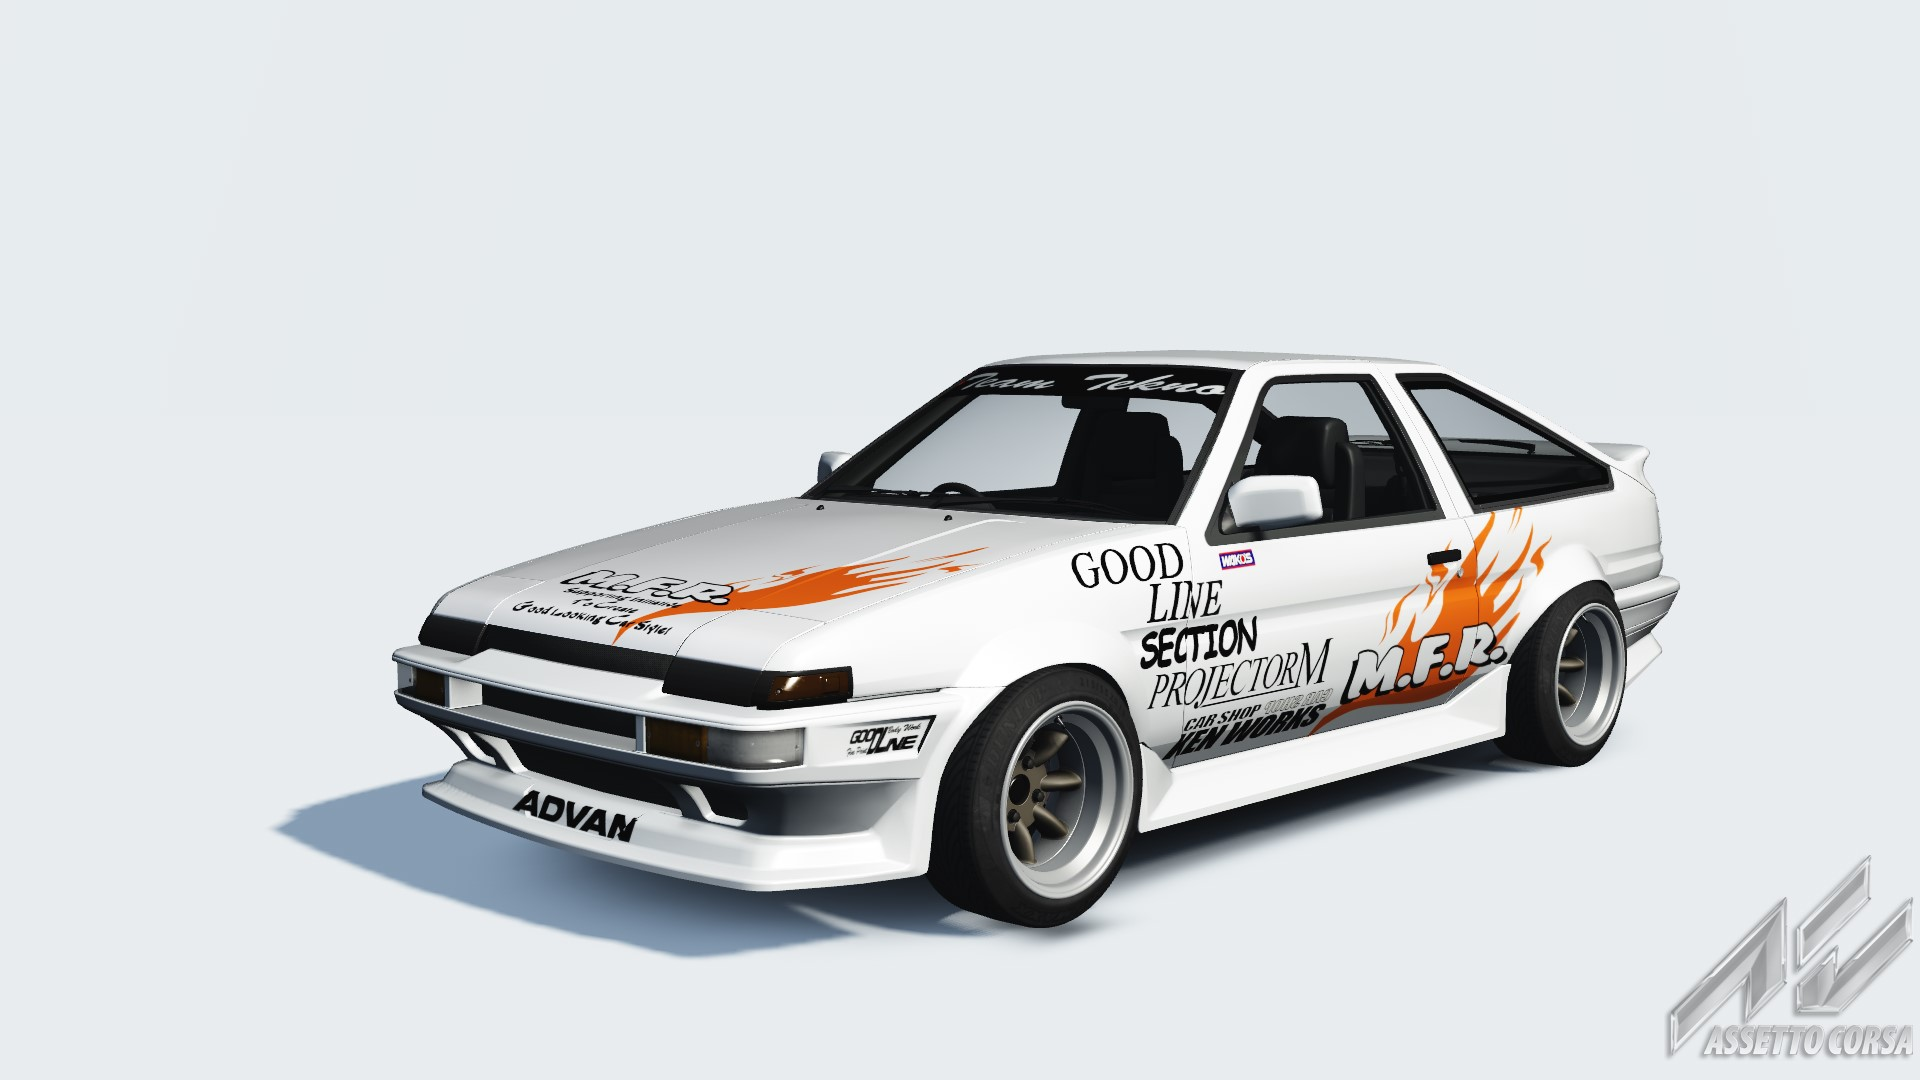 Showroom_ks_toyota_ae86_drift_31-4-2016-22-4-27.jpg